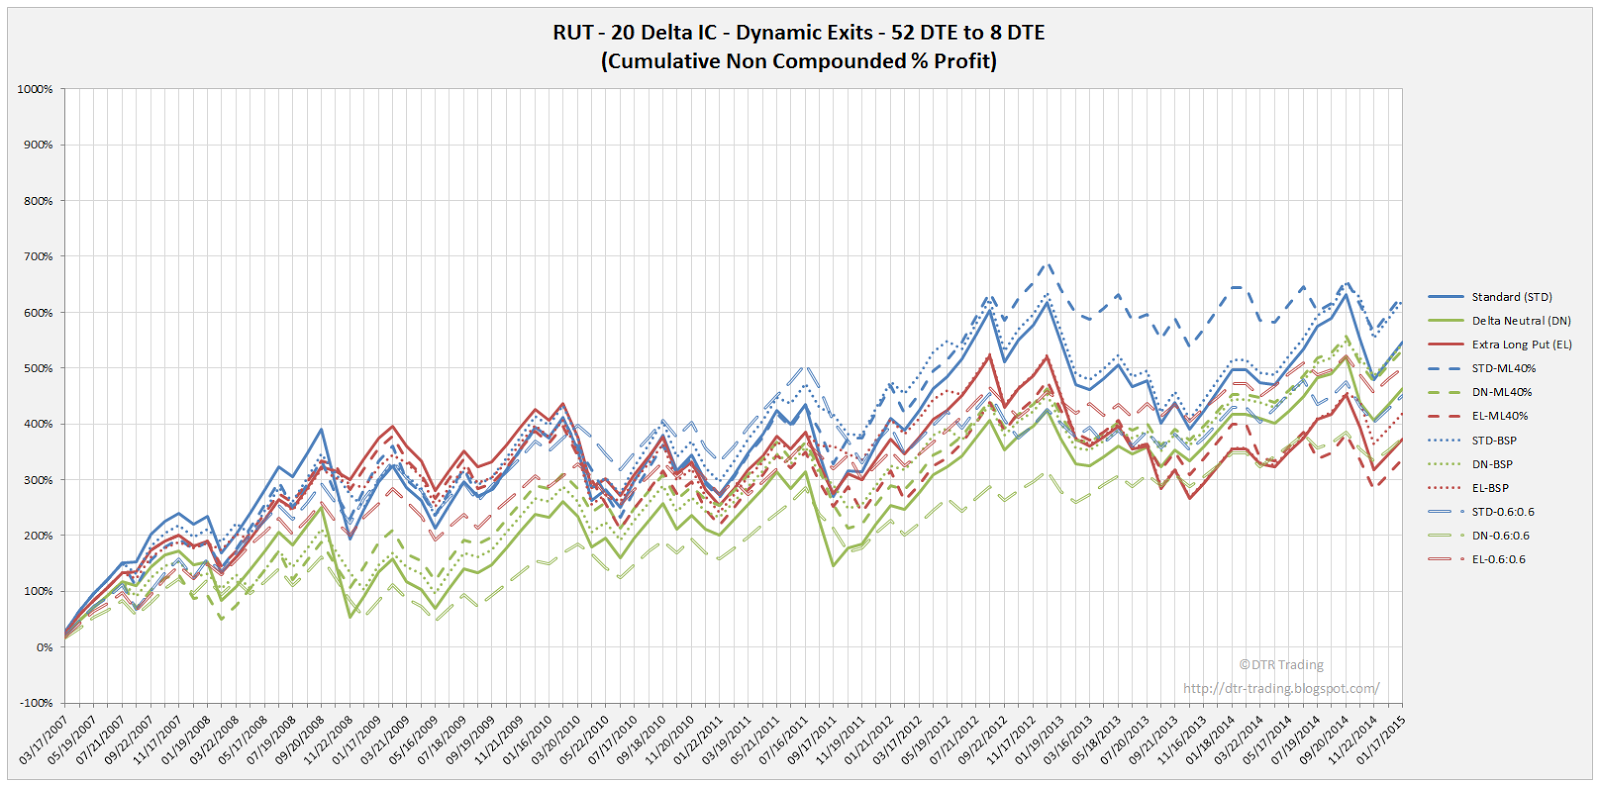 Iron Condor Dynamic Exit Equity Curves RUT 52 DTE 20 Delta All Versions